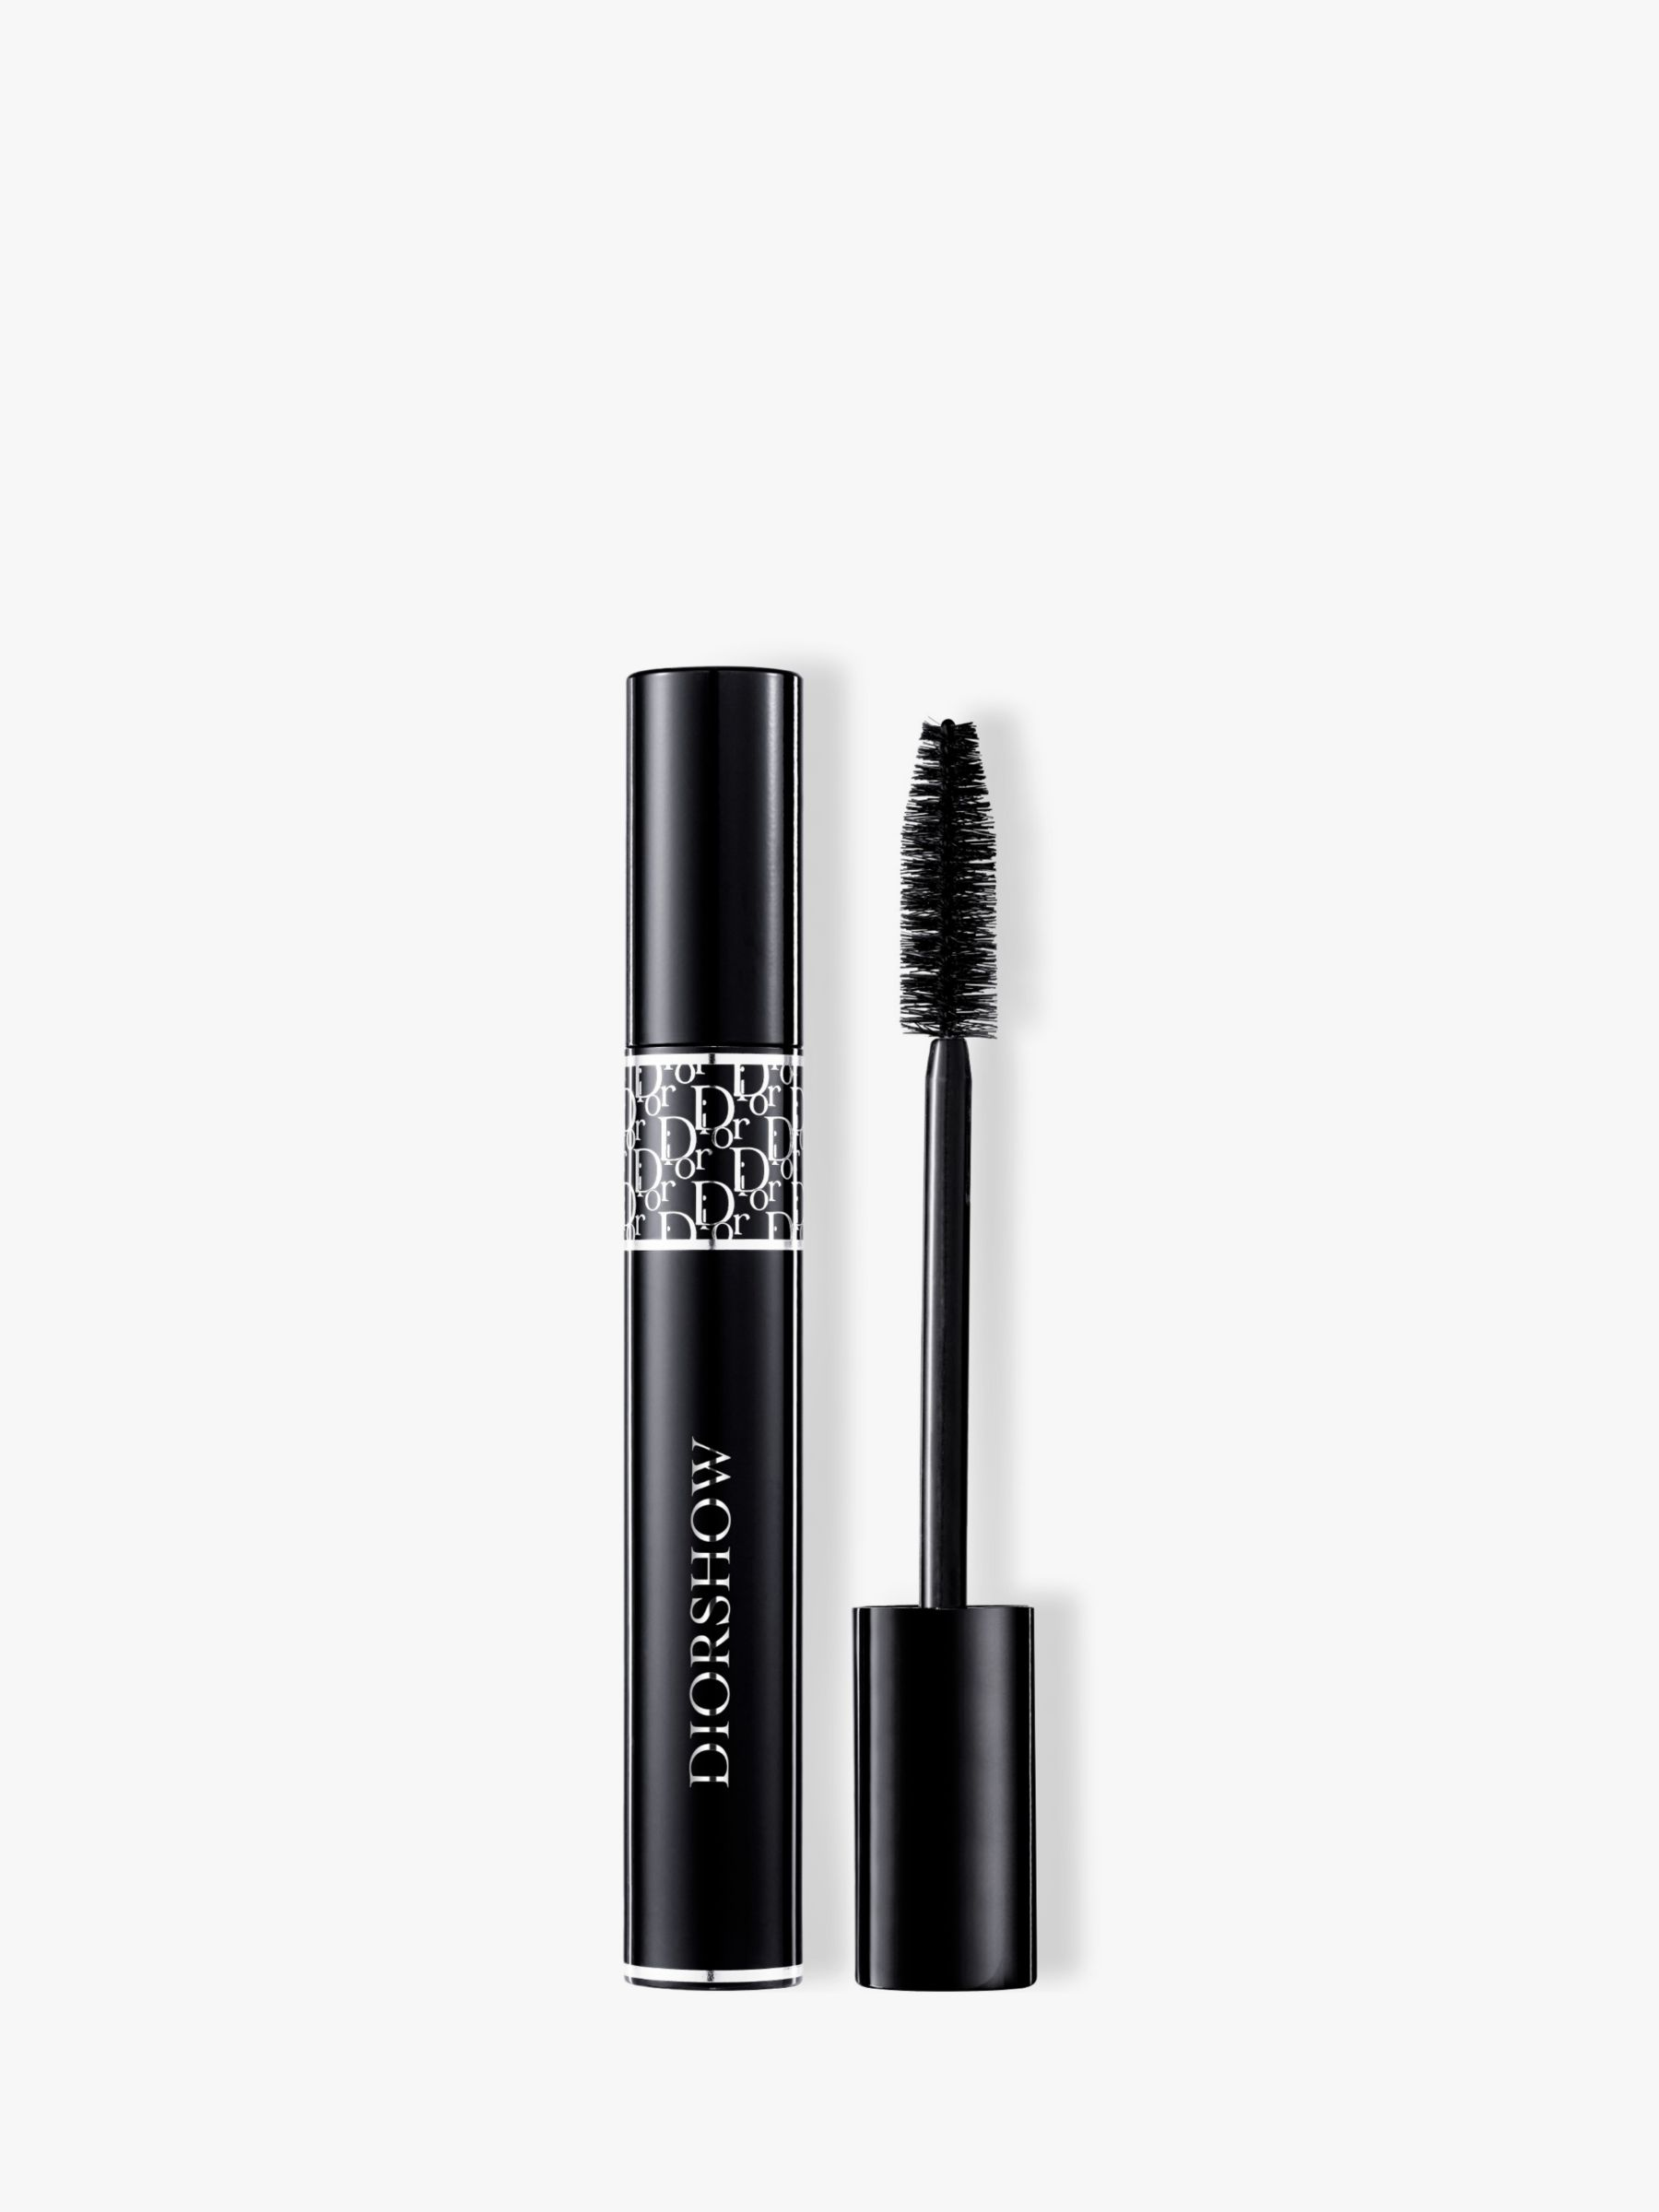 Buy Dior Diorshow Mascara, Black 090 Online at johnlewis.com